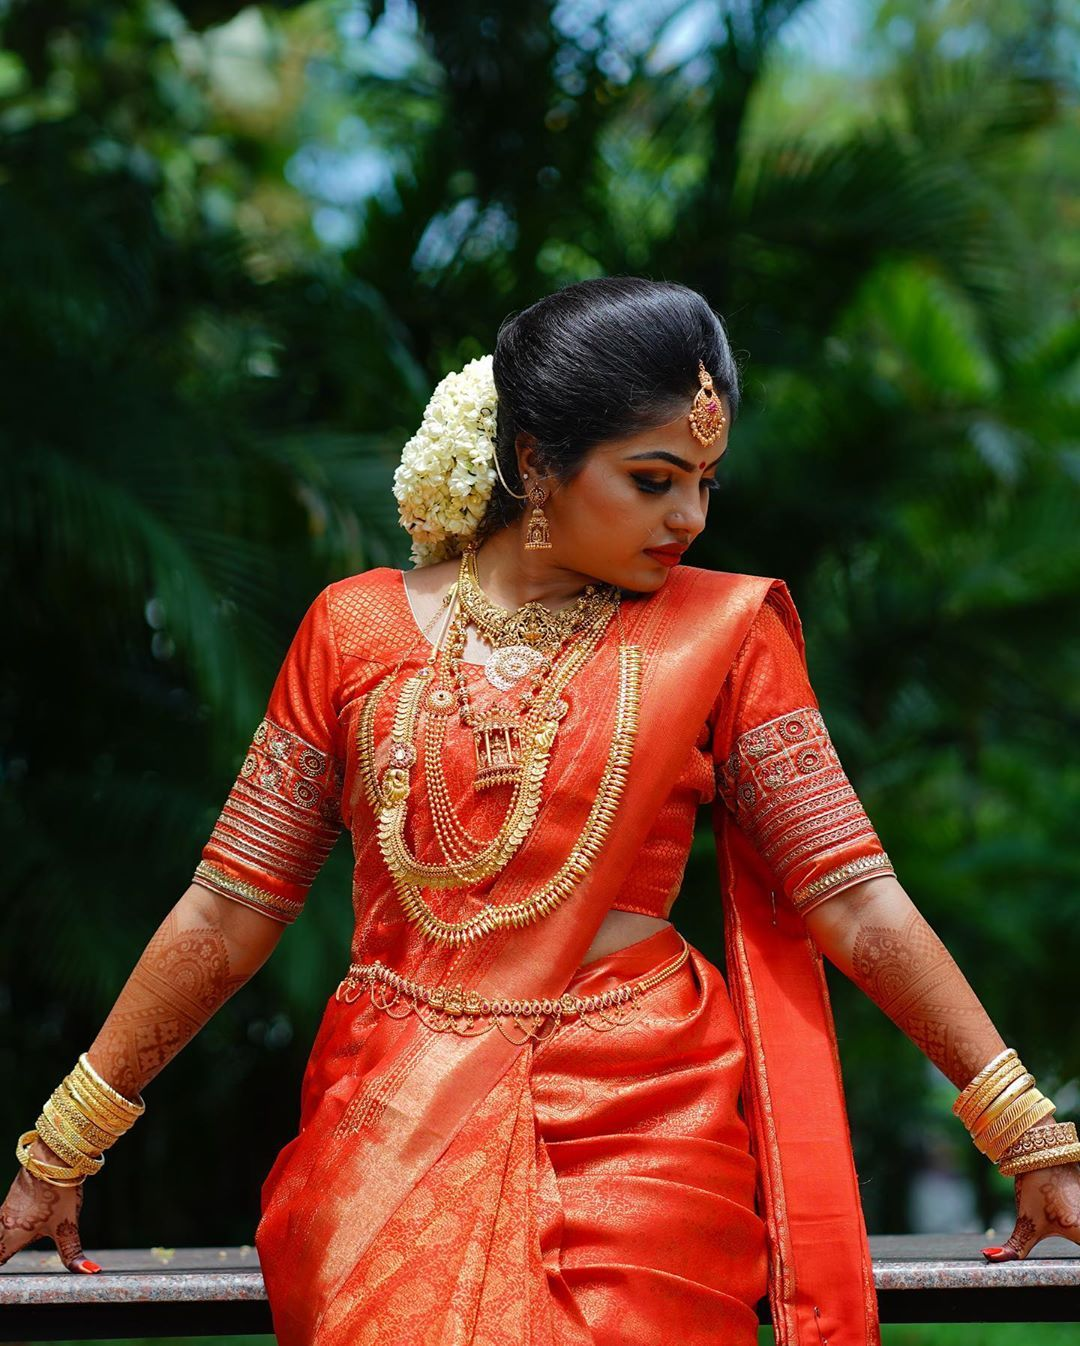 Image May Contain One Or More People And People Standing Indian Bridal Fashion South Indian Wedding Hairstyles Bridal Sarees South Indian